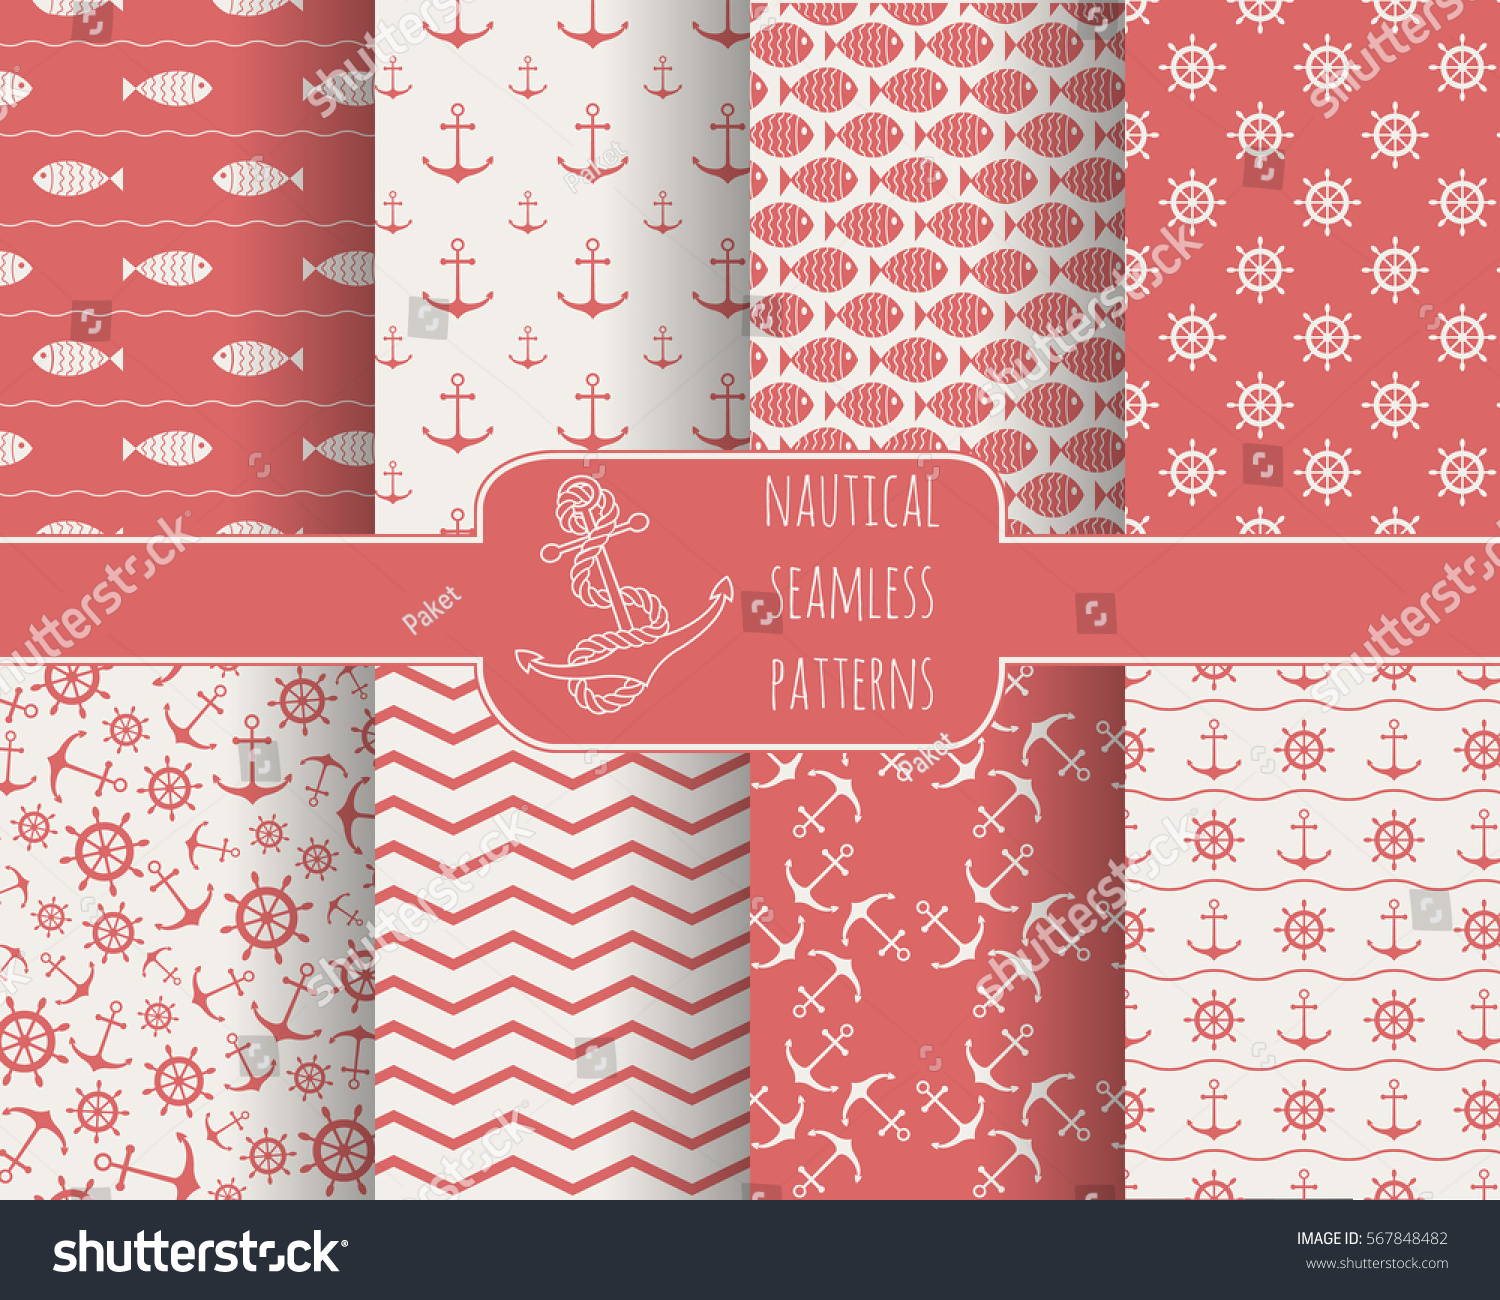 Seamless Nautical Themed Patterns Set Anchors Stock Vector 2018